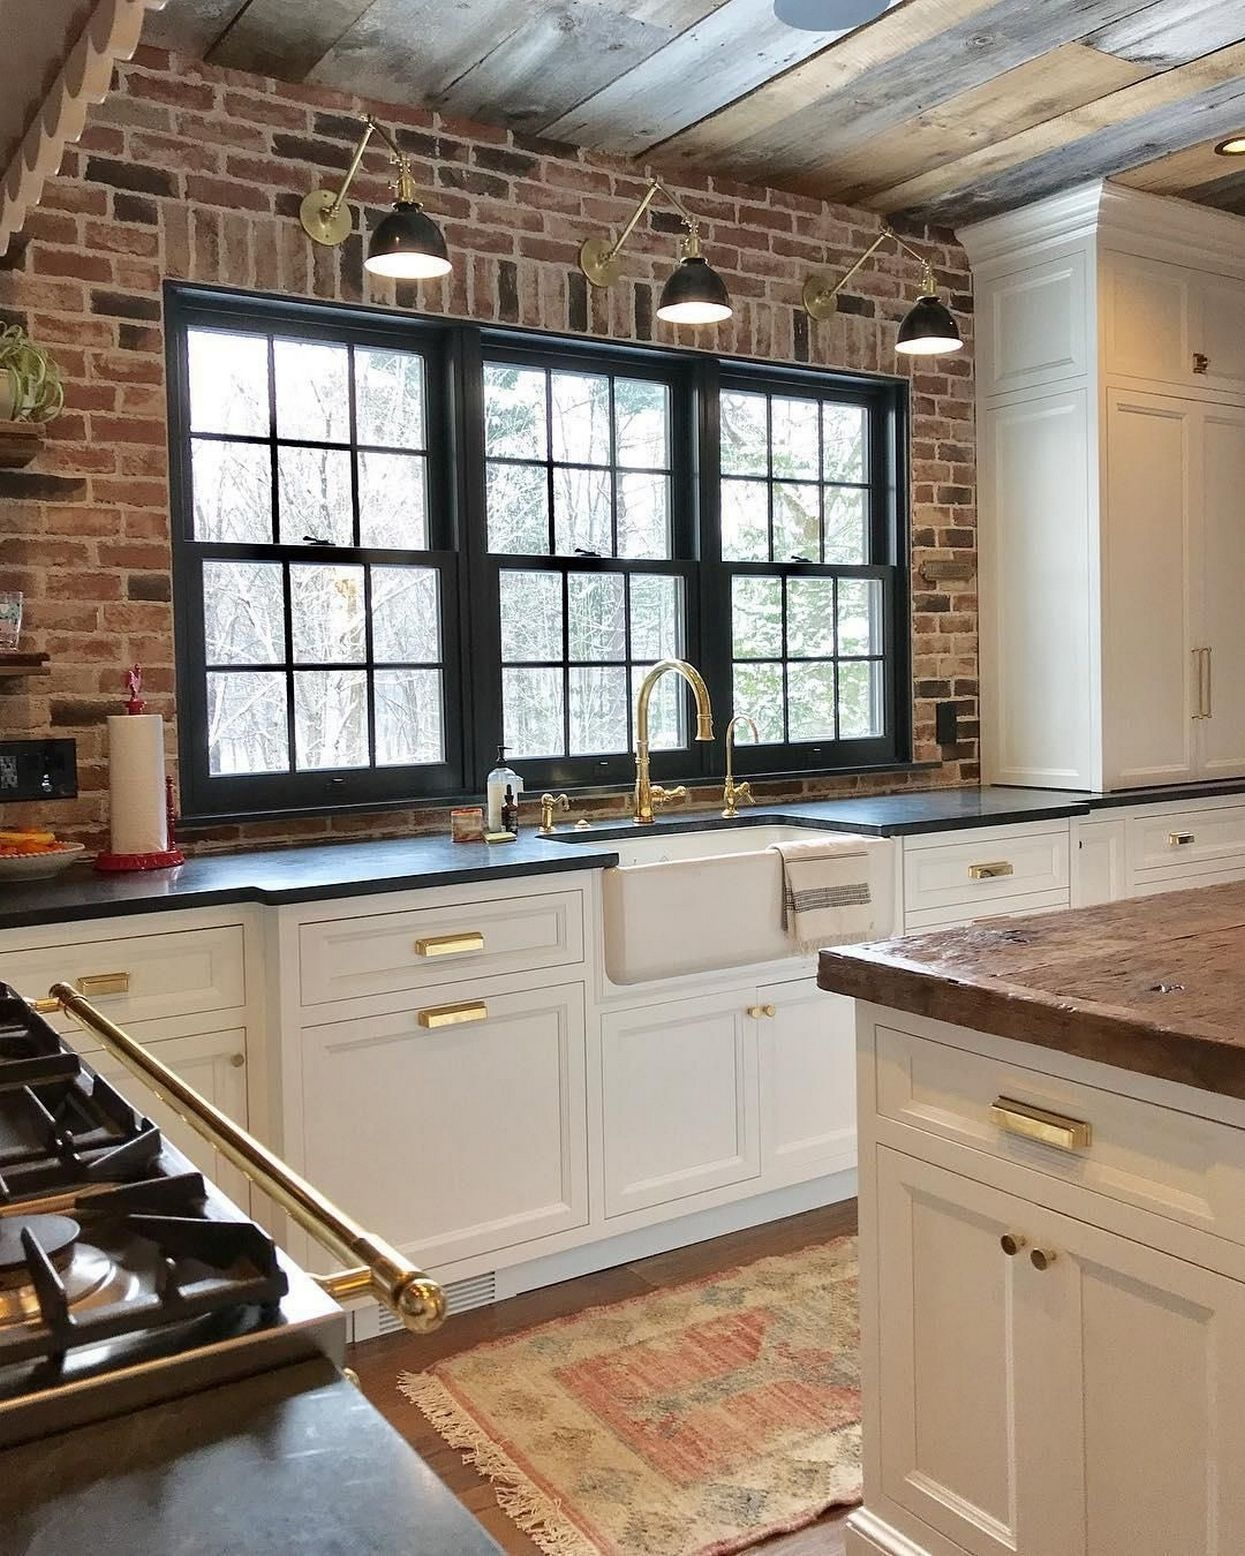 Rustic Hardwood Flooring Tips And Suggestion: 34 Best Choices Kitchen Ideas